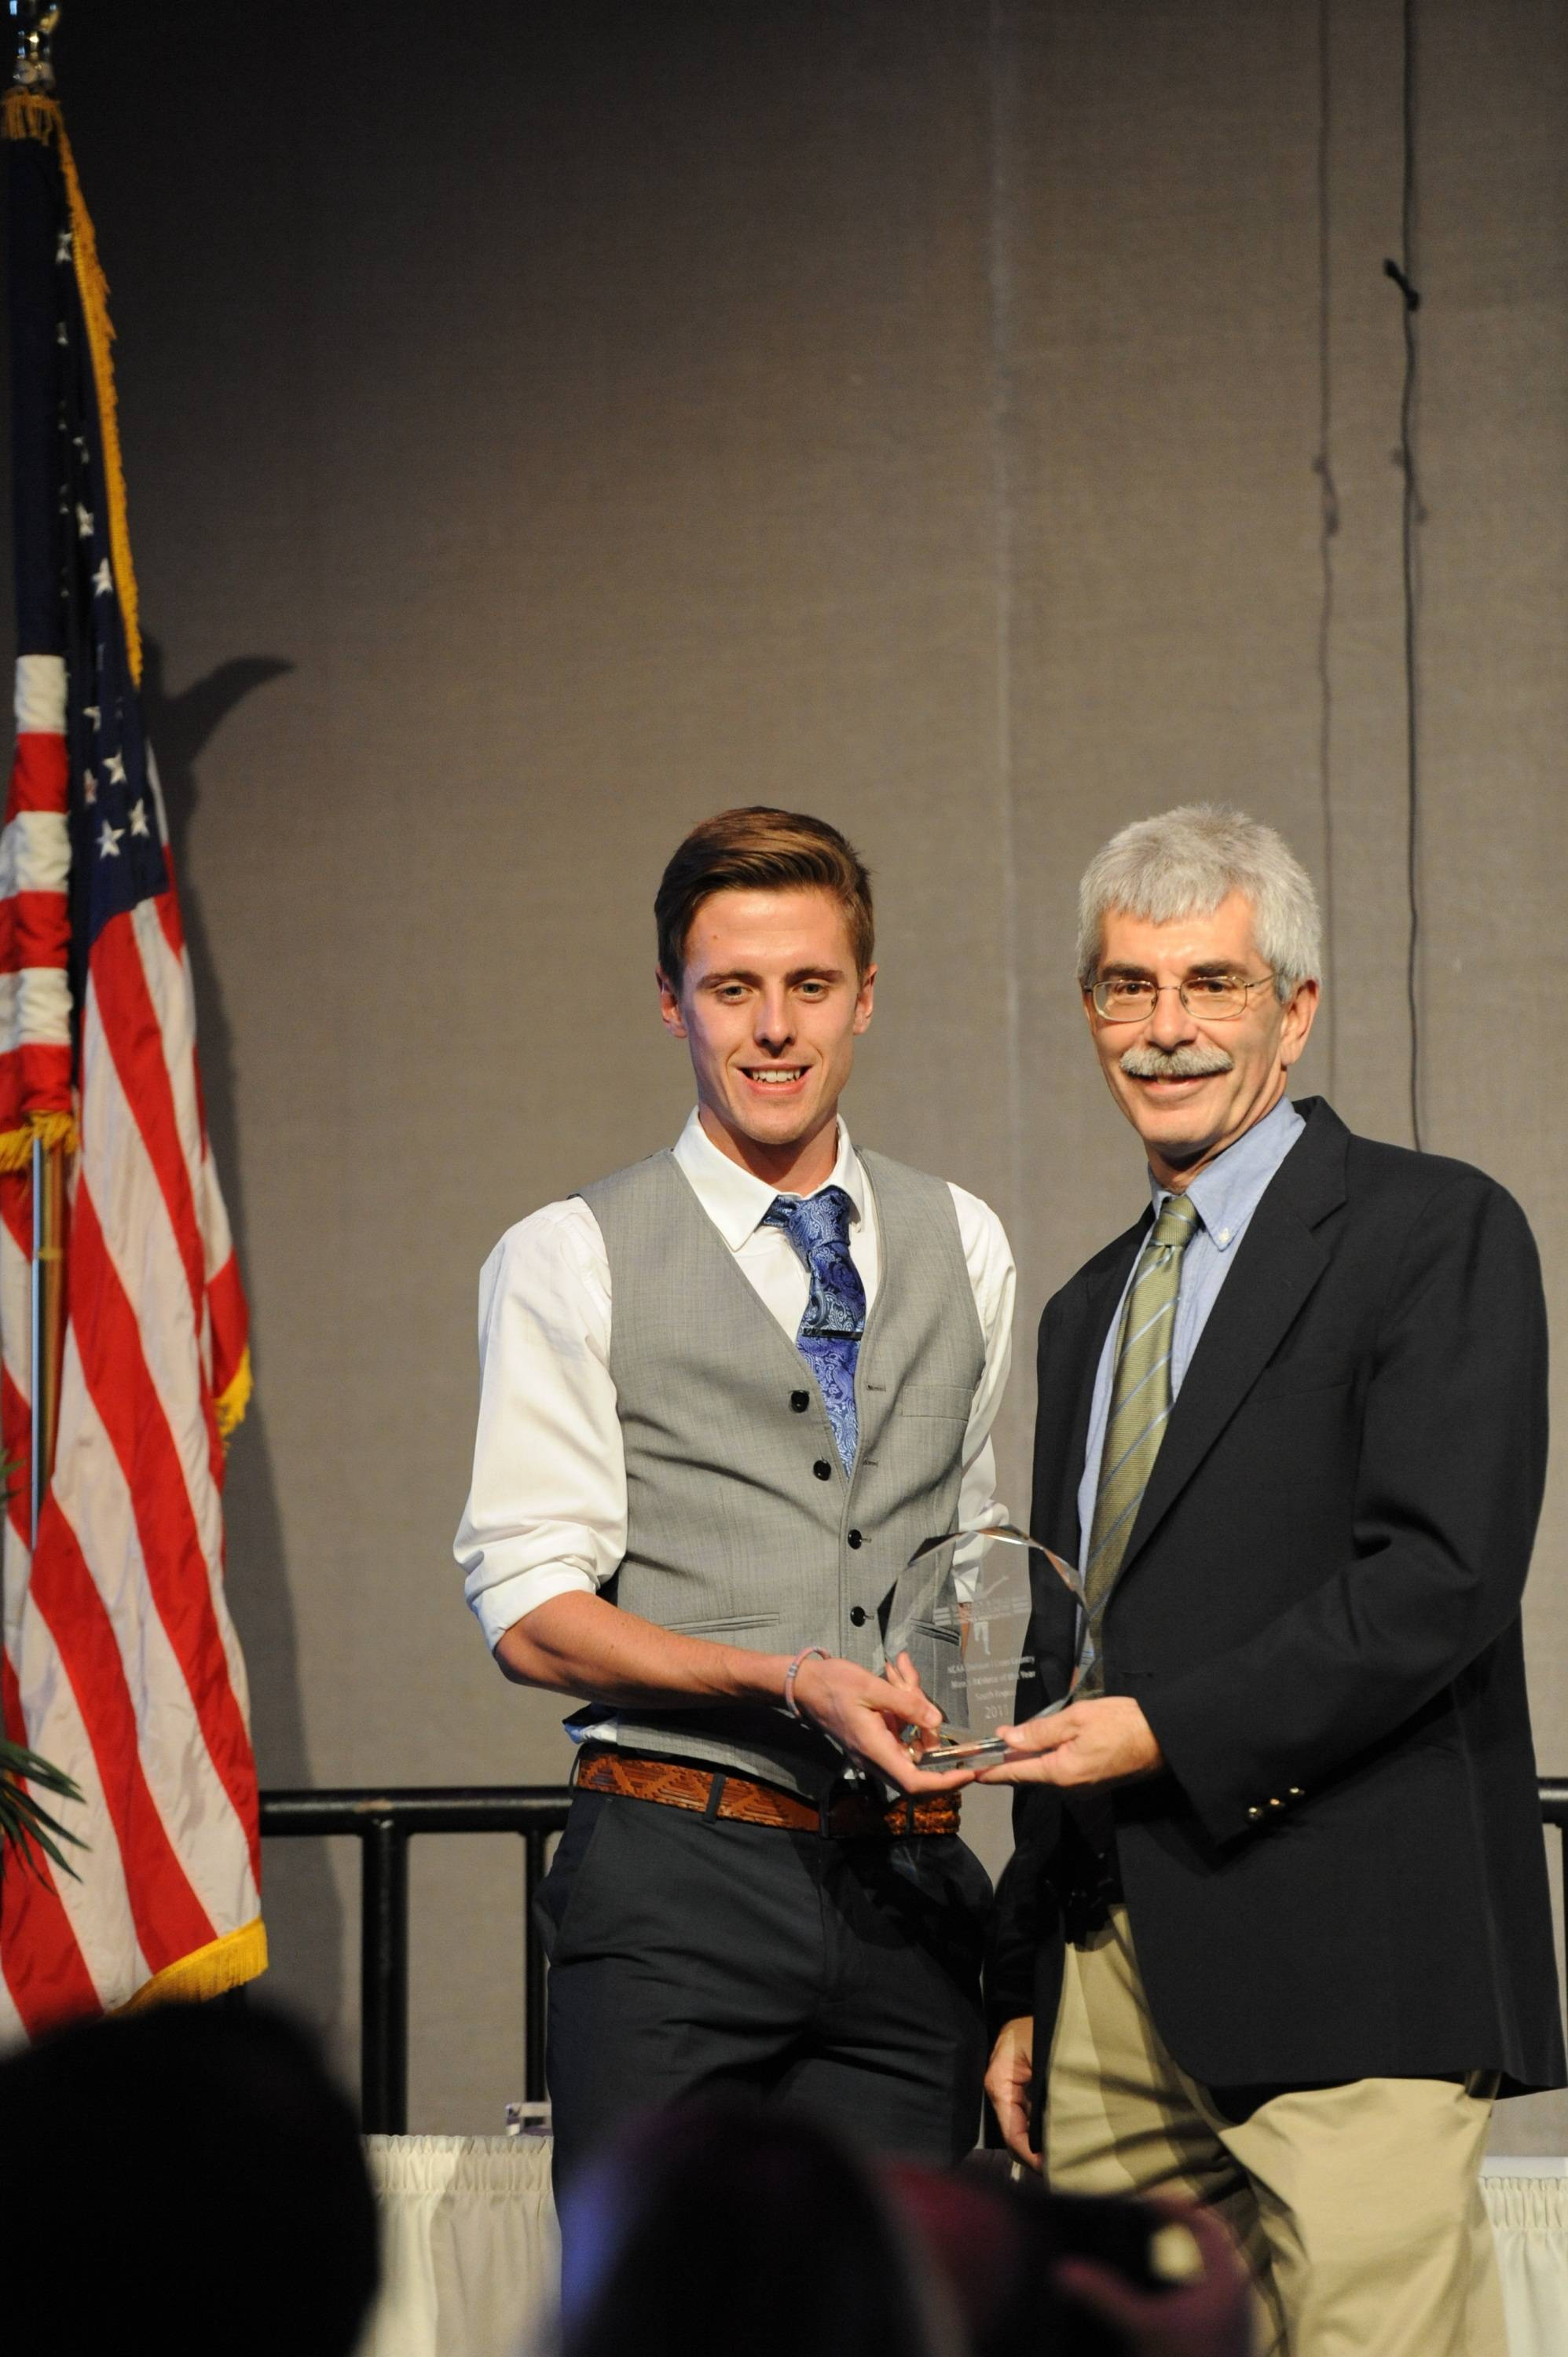 FSU's David Forrester was recognized as the NCAA South Region Athlete of the Year.